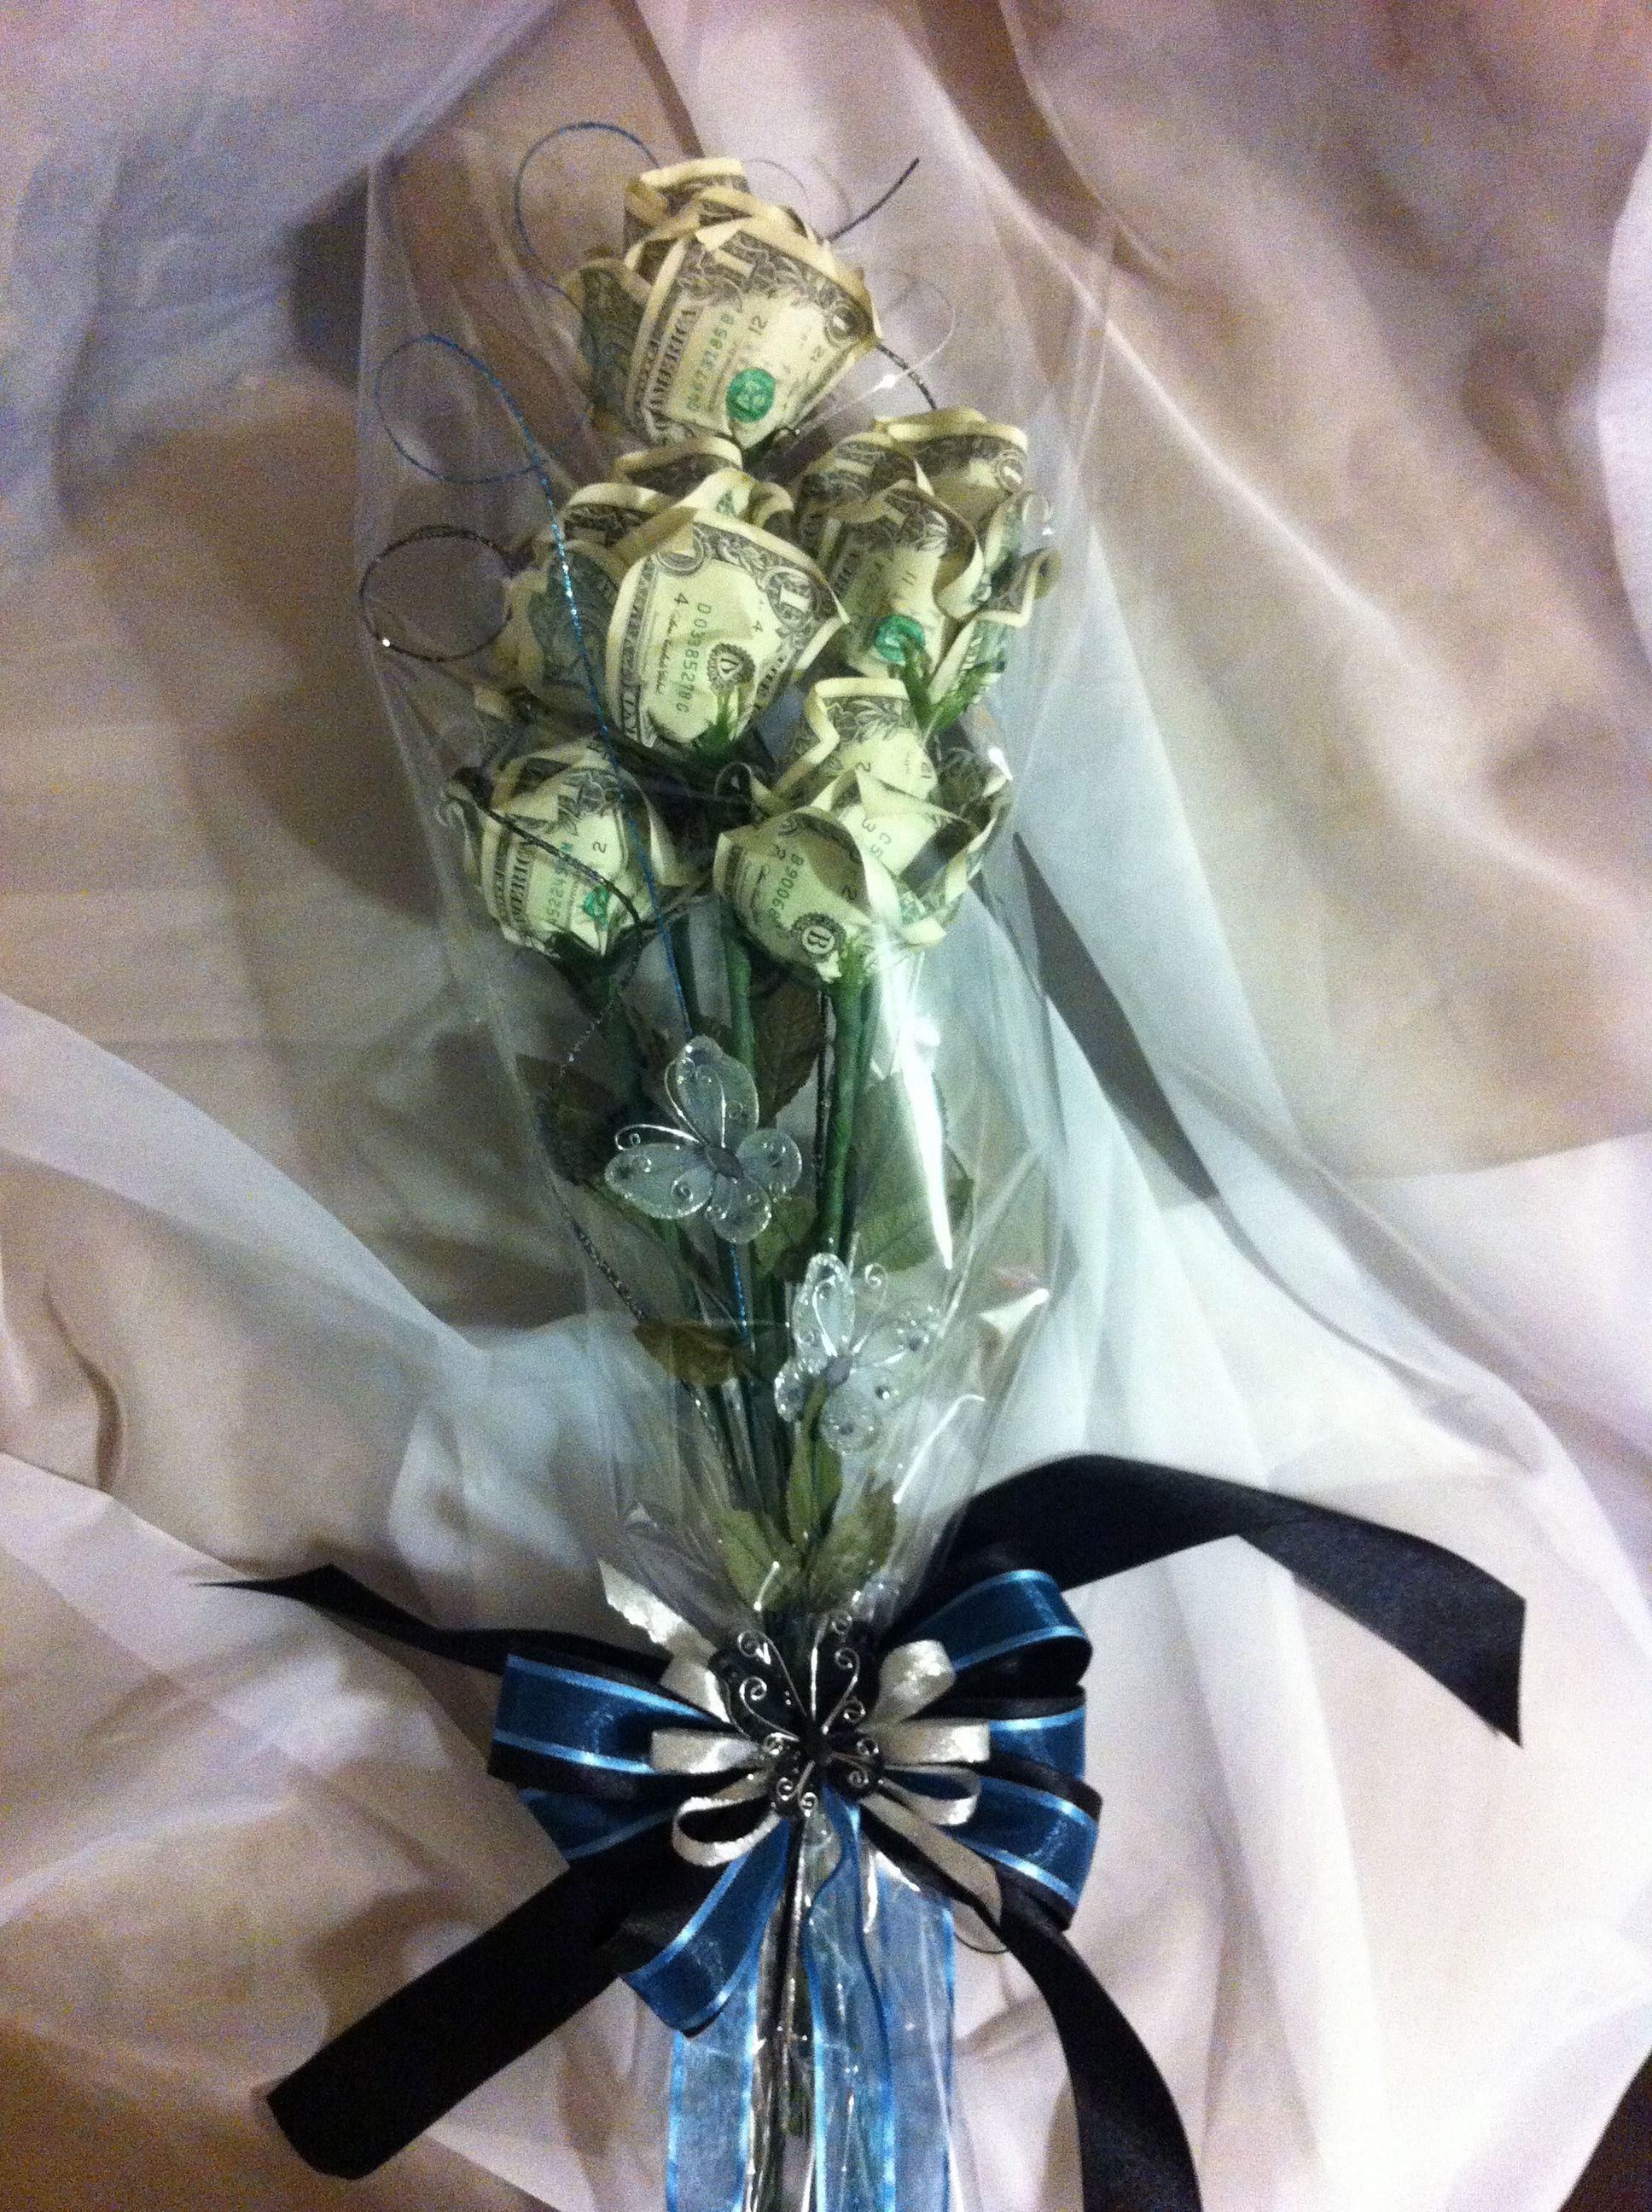 Graduation Money Rose Bouquet Things I Love To Make Pinterest